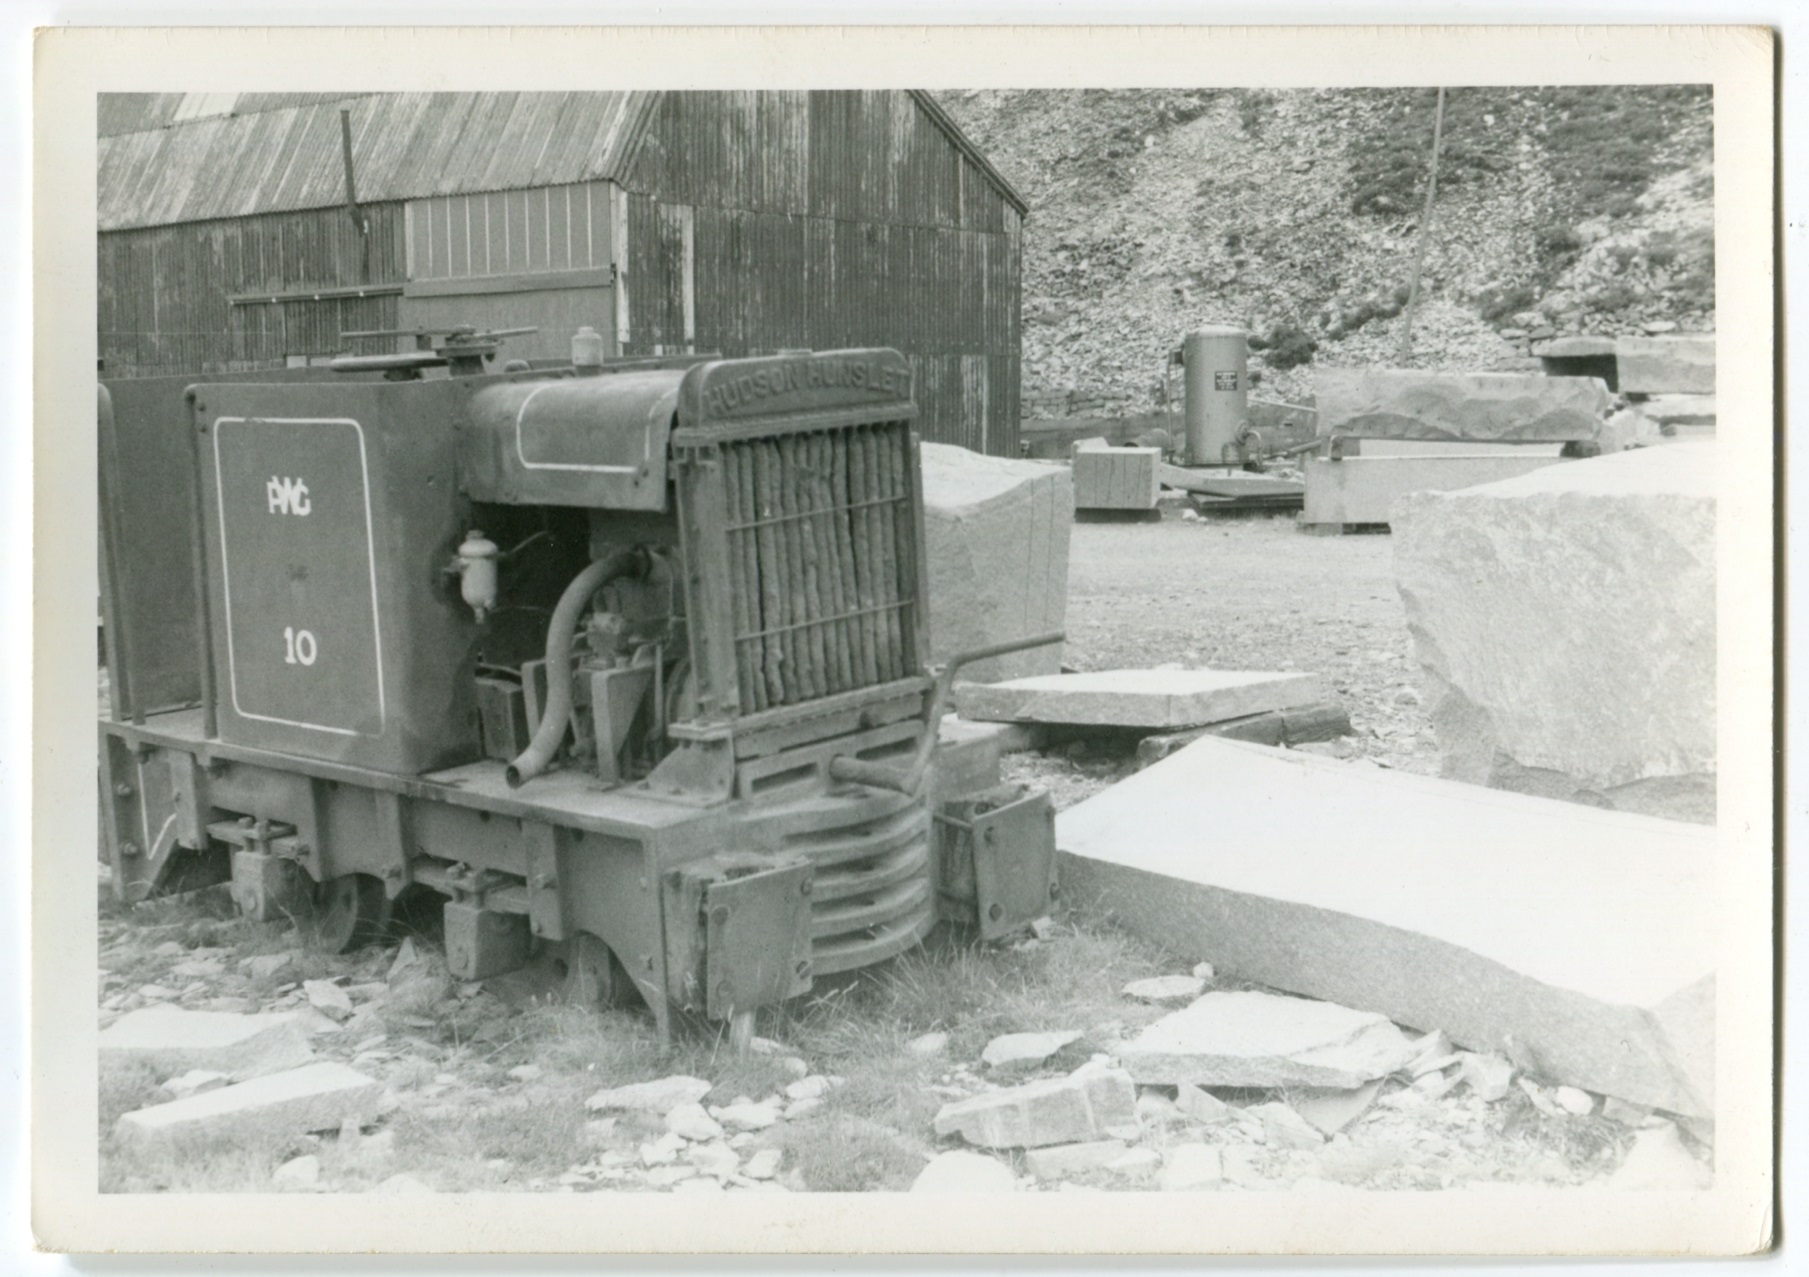 1965 Quarry Photo 27.jpg